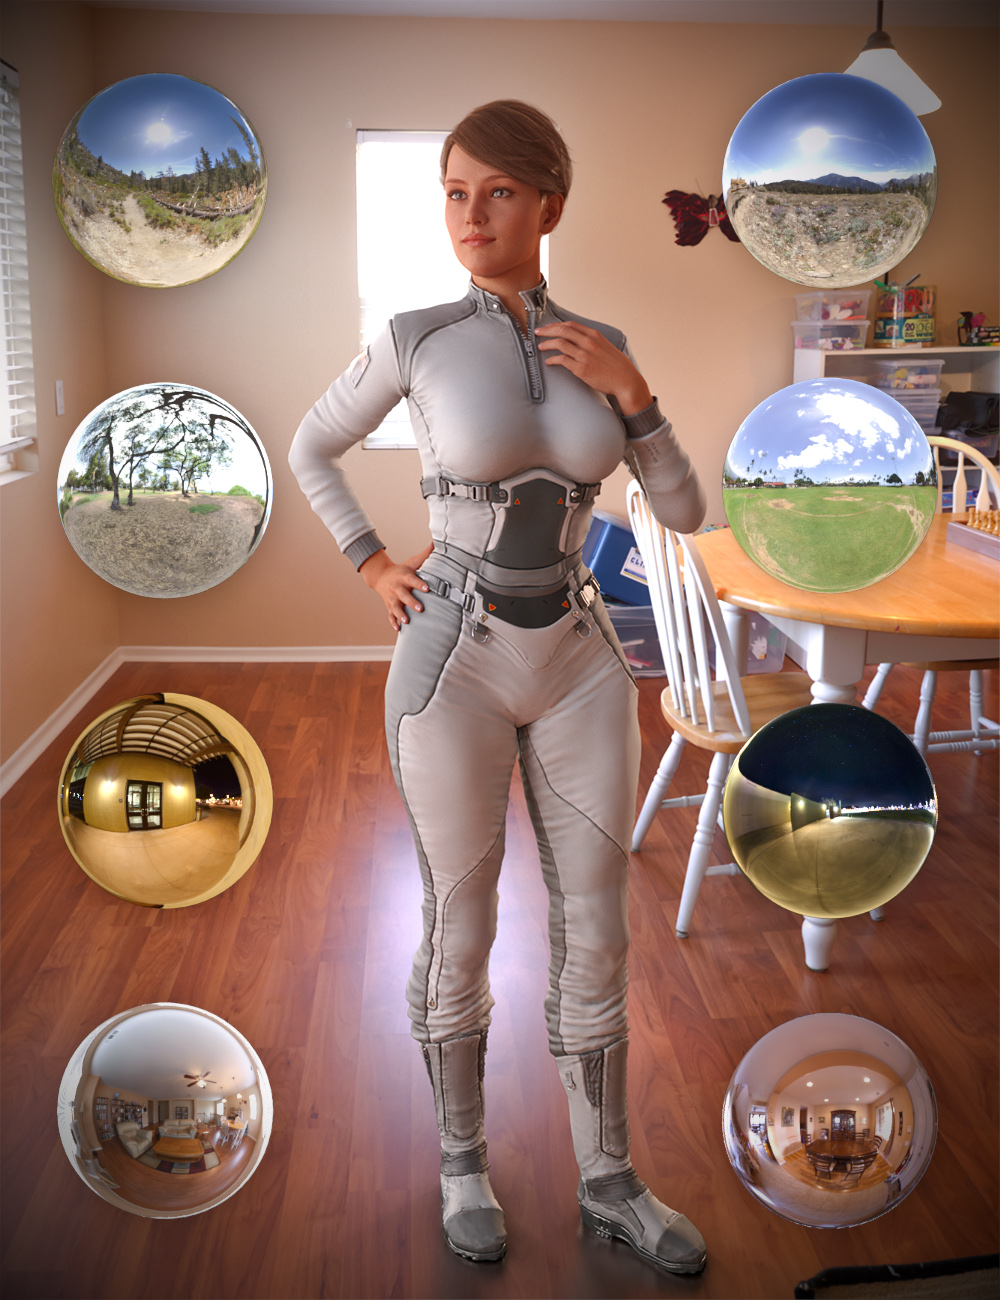 iRadiance - HDRI Variety Pack One by: DimensionTheory, 3D Models by Daz 3D